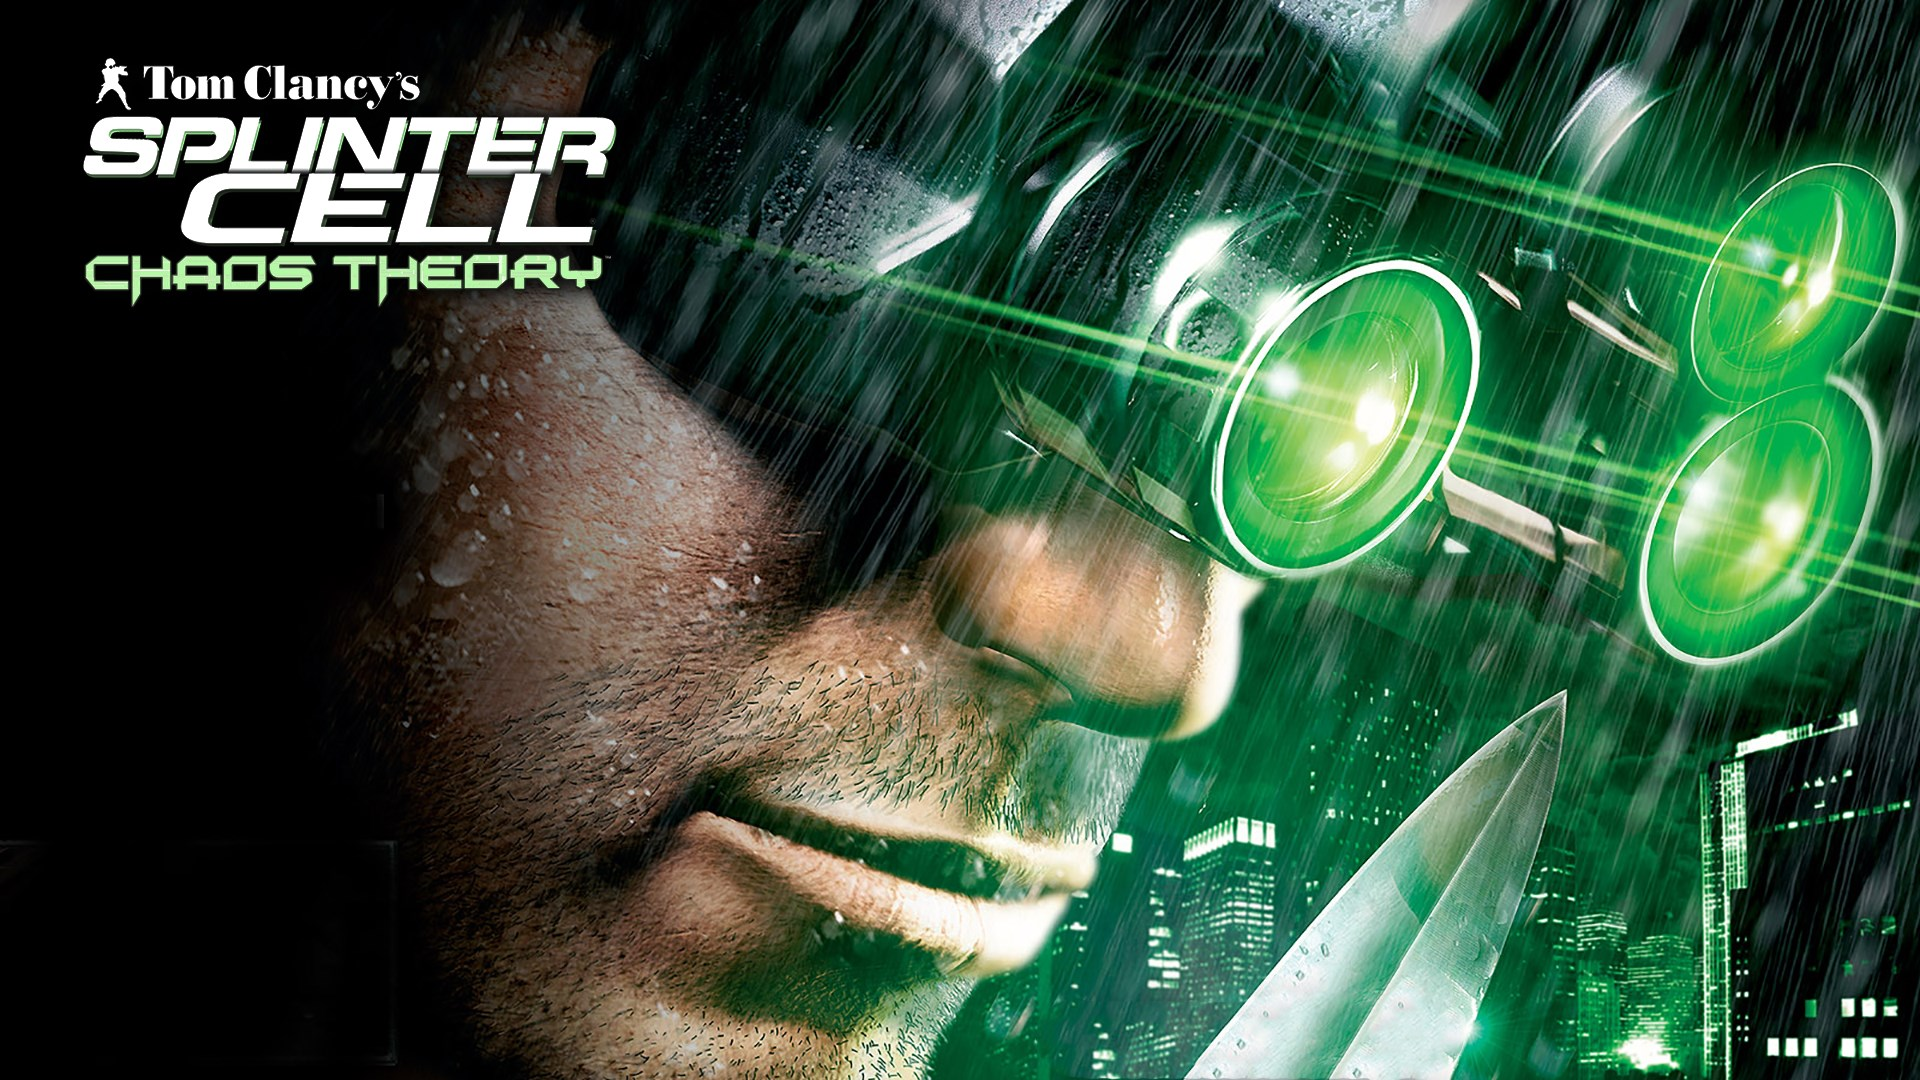 Tom Clancy's Splinter Cell: Chaos Theory Wallpaper